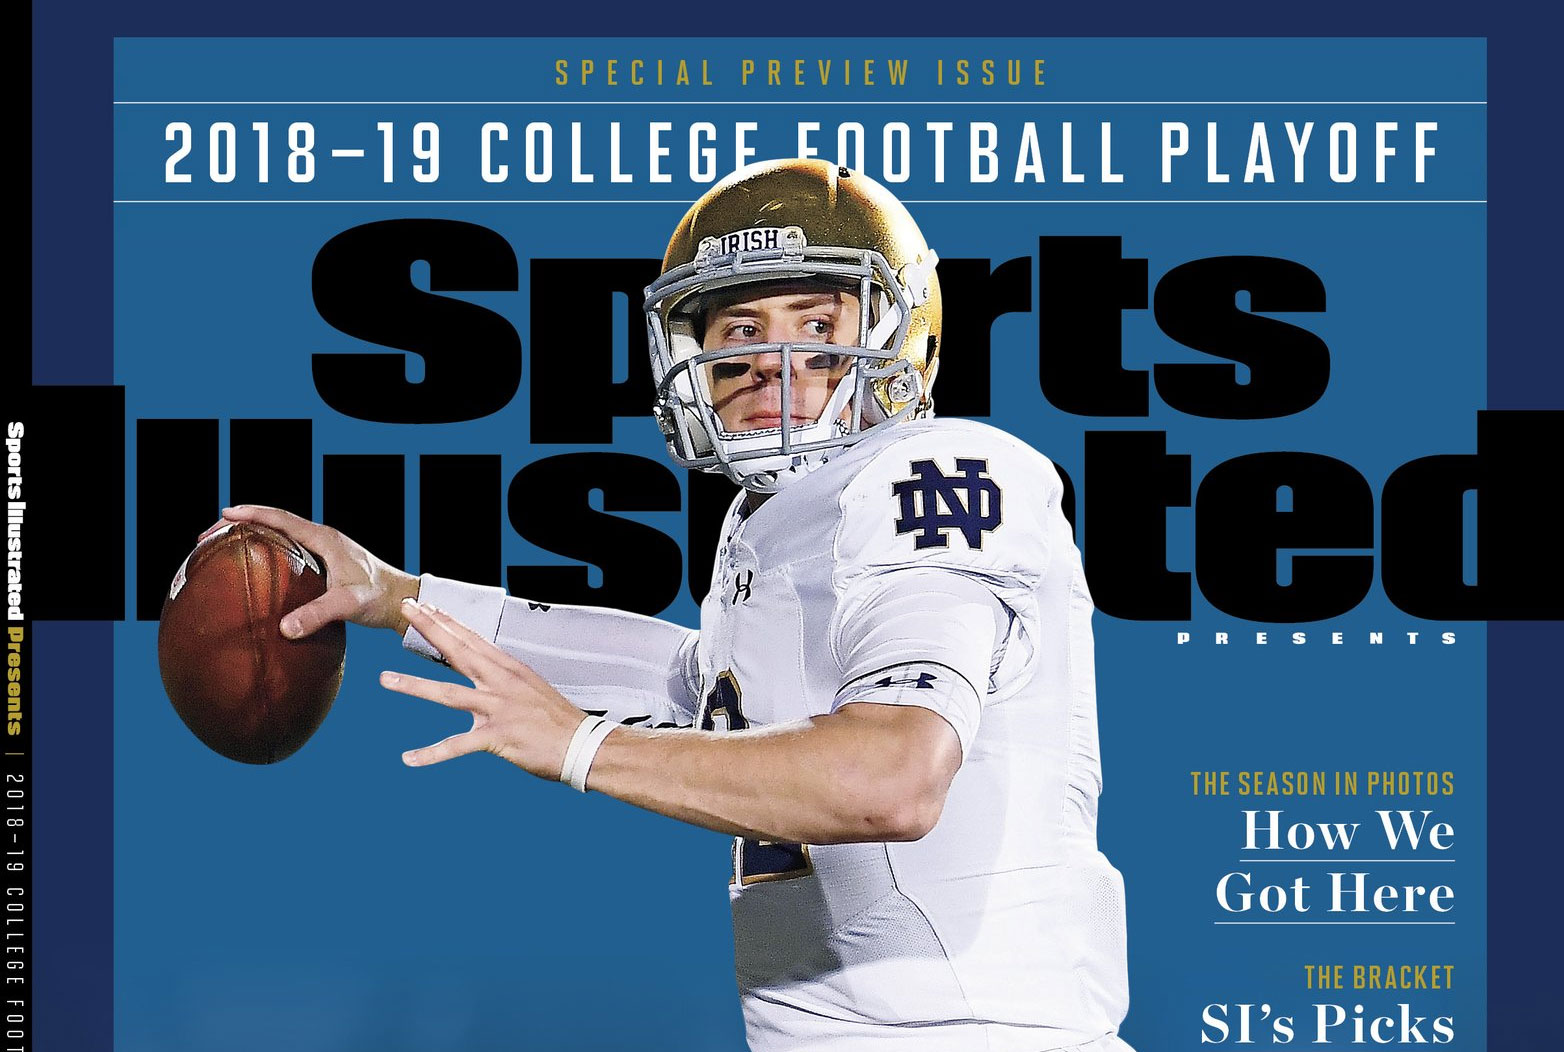 Notre Dame Qb Ian Book Lands On Sports Illustrated Cover